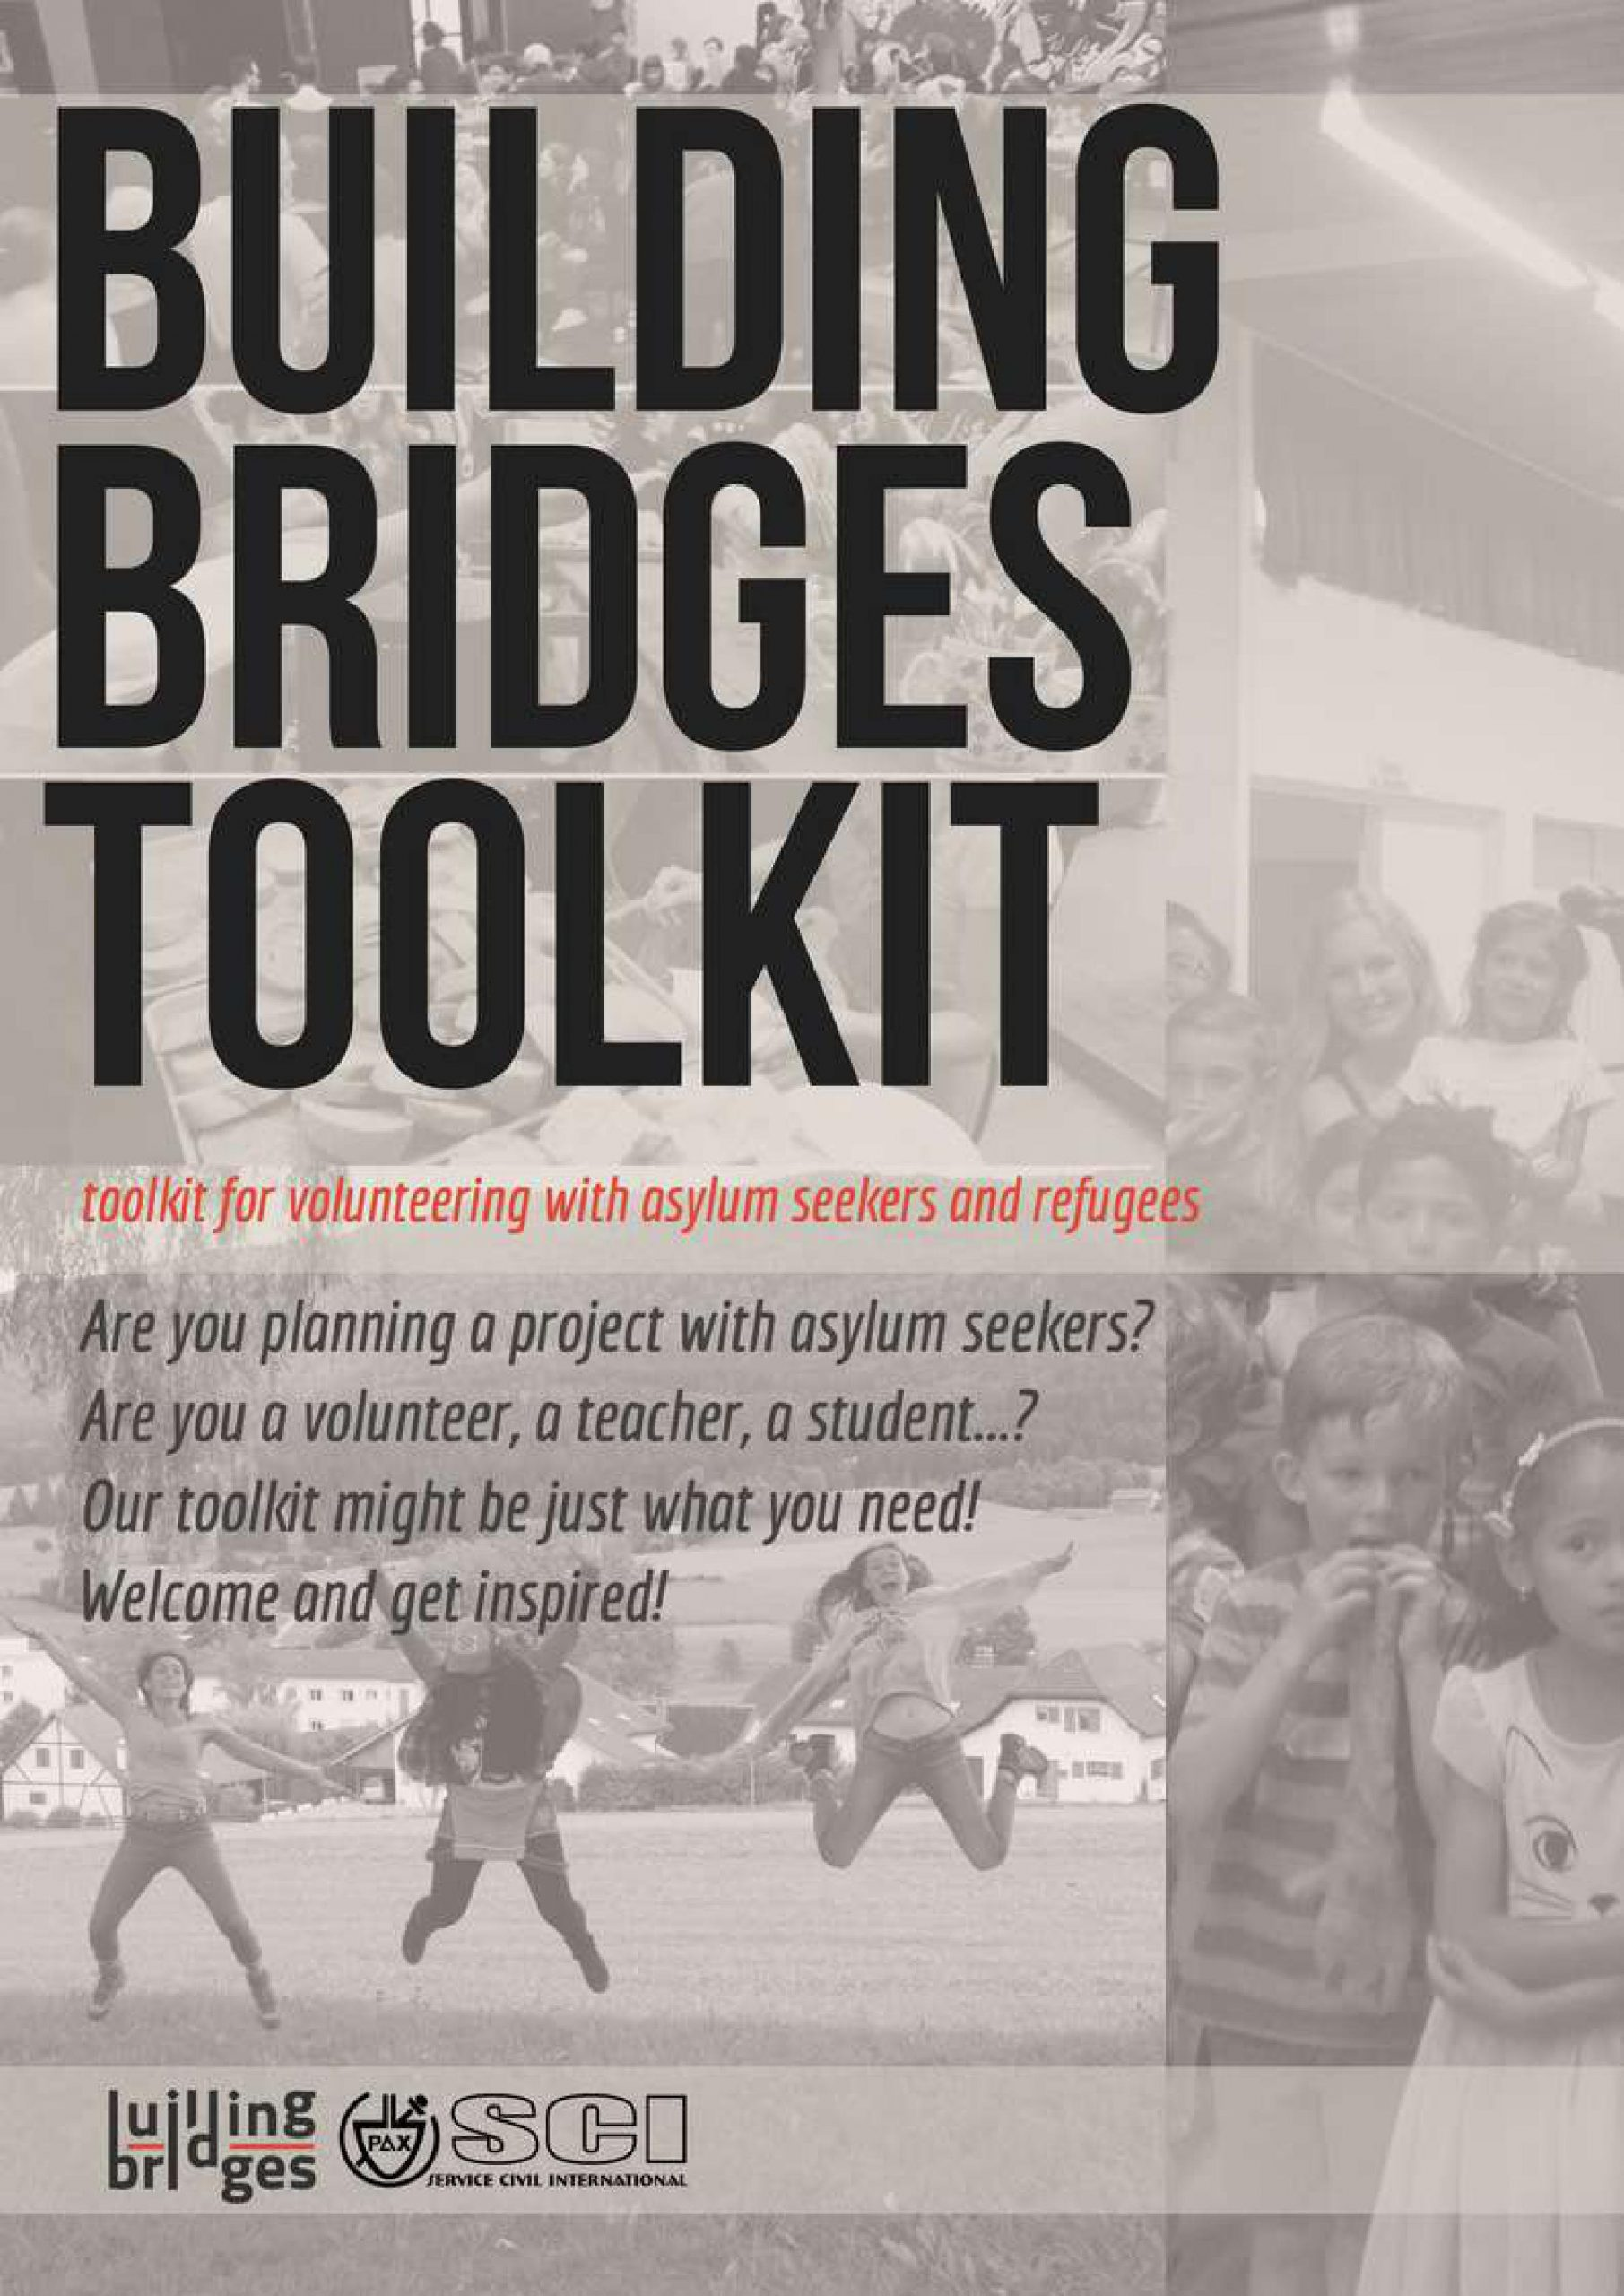 Building bridges toolkit